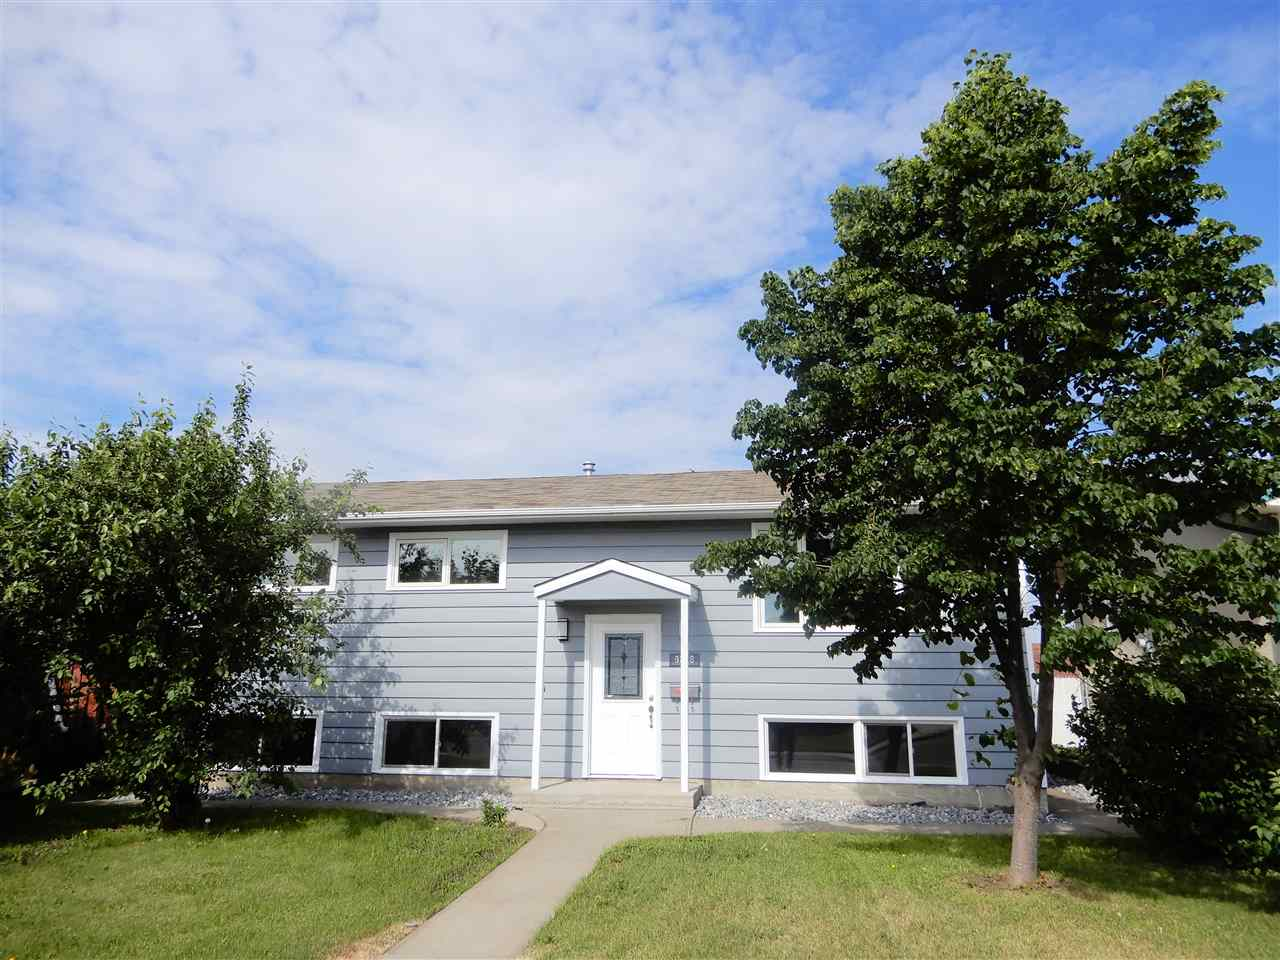 Main Photo: 9828 169 Street in Edmonton: Zone 22 House for sale : MLS(r) # E4068799